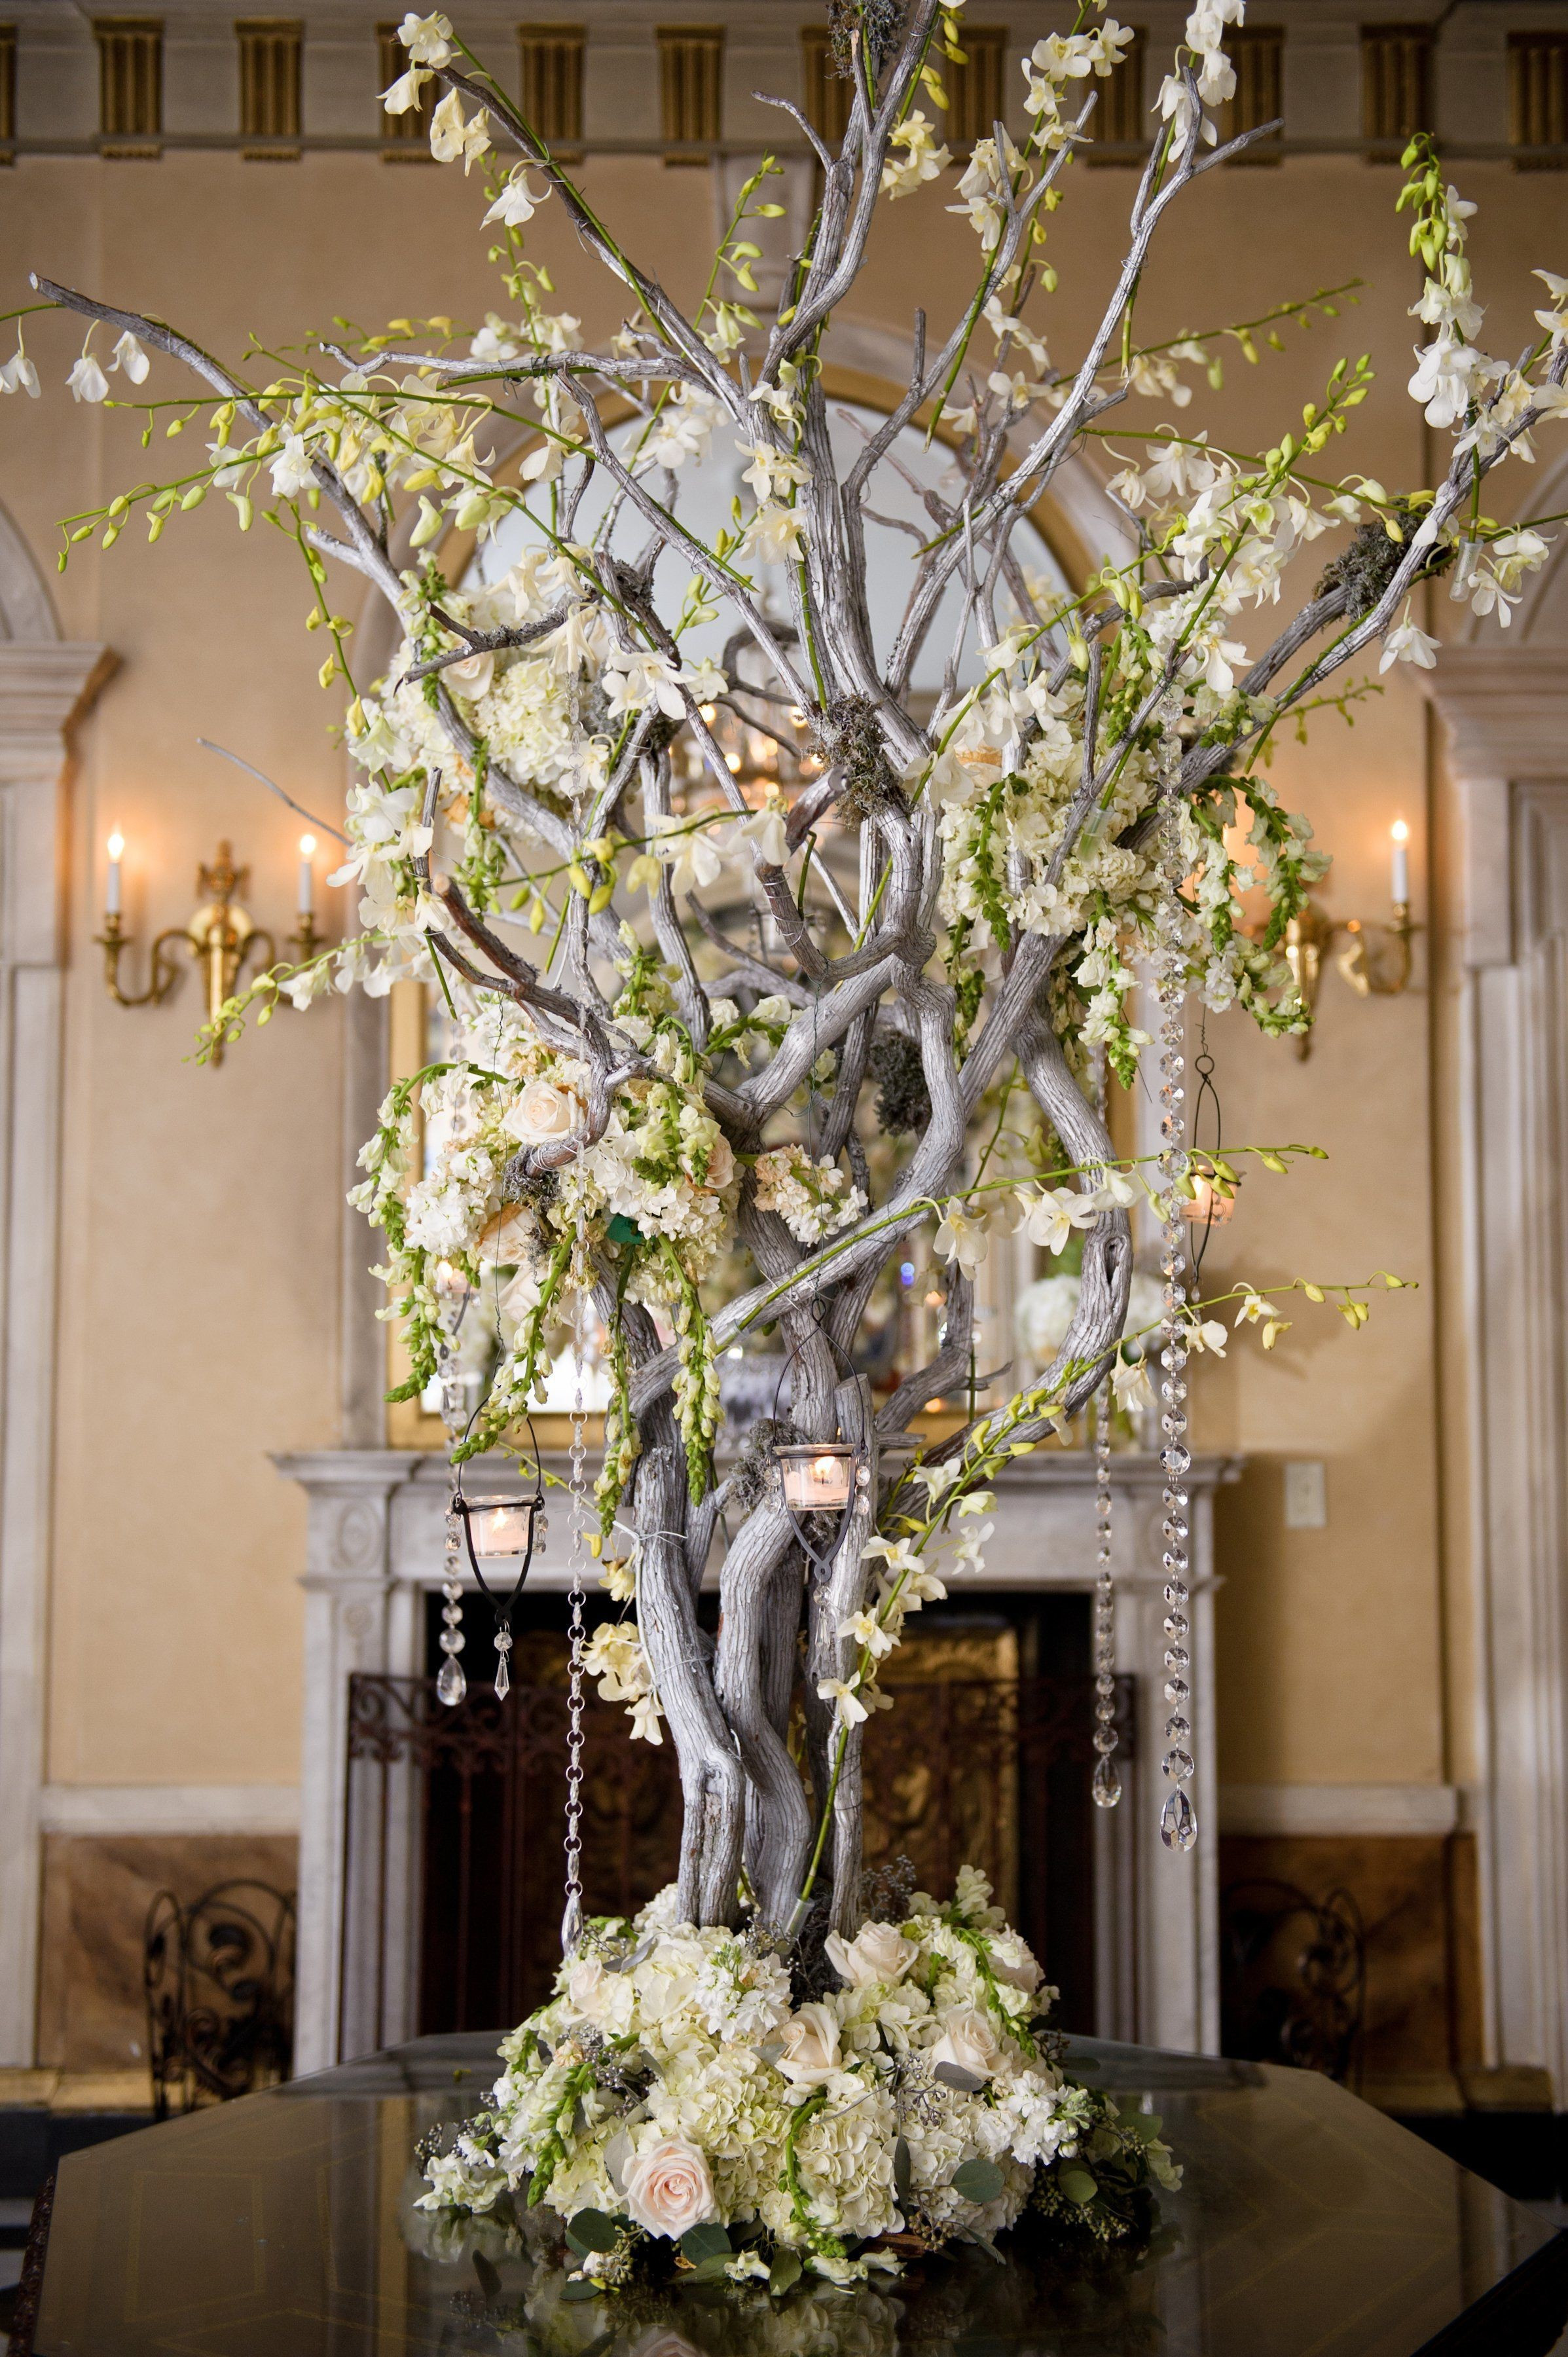 orchid vase of decorative branches for weddings awesome tall vase centerpiece ideas with regard to decorative branches for weddings best of a tall arrangement of manzanita branches dripping with white blooms